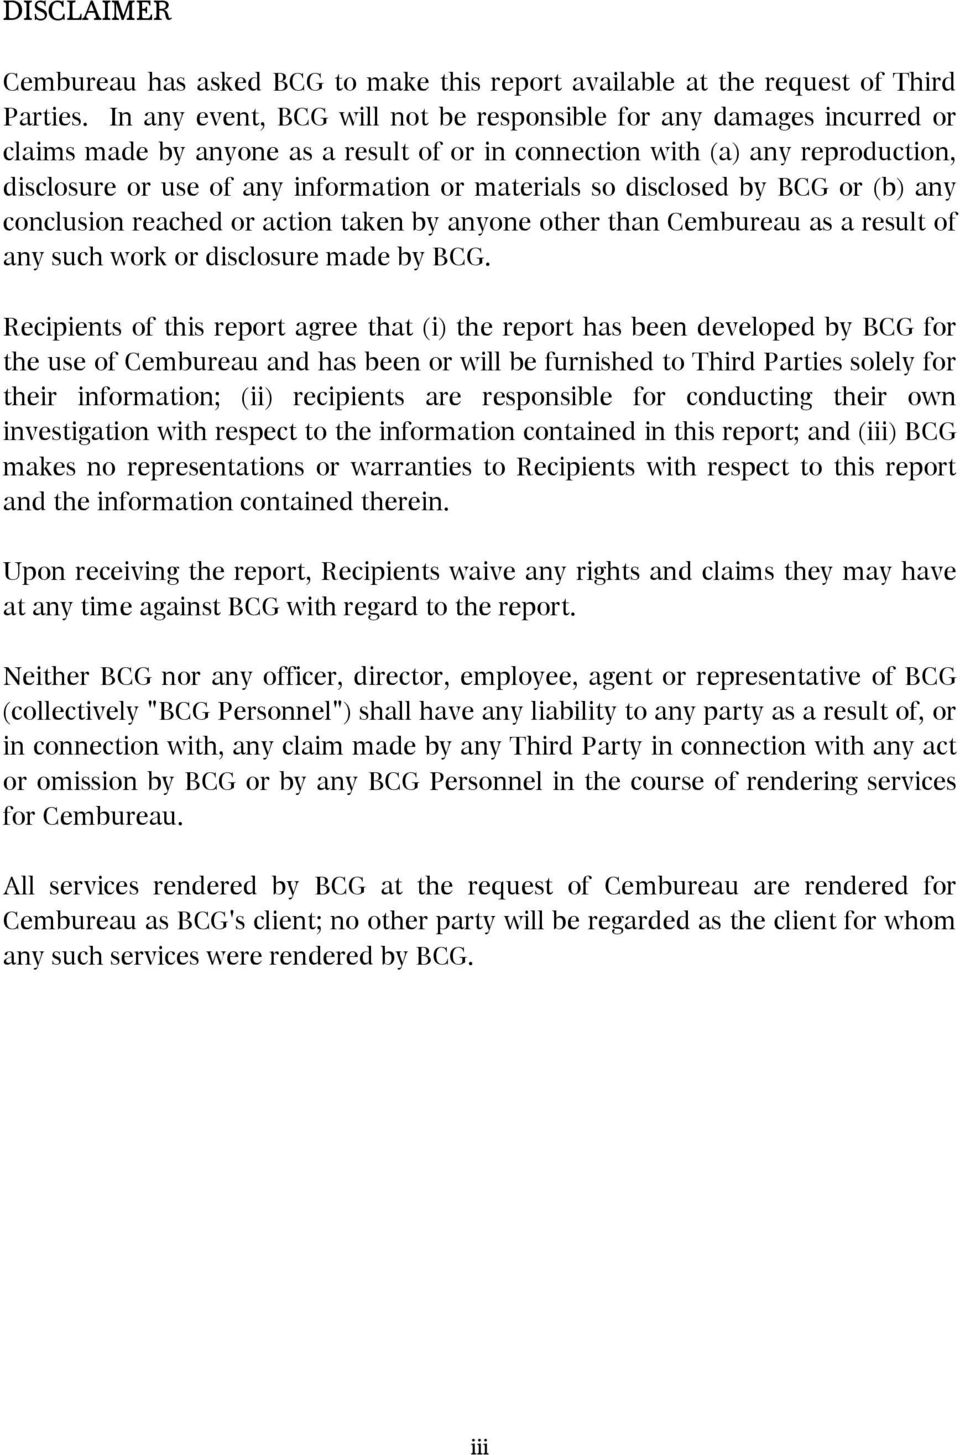 materials so disclosed by BCG or (b) any conclusion reached or action taken by anyone other than Cembureau as a result of any such work or disclosure made by BCG.